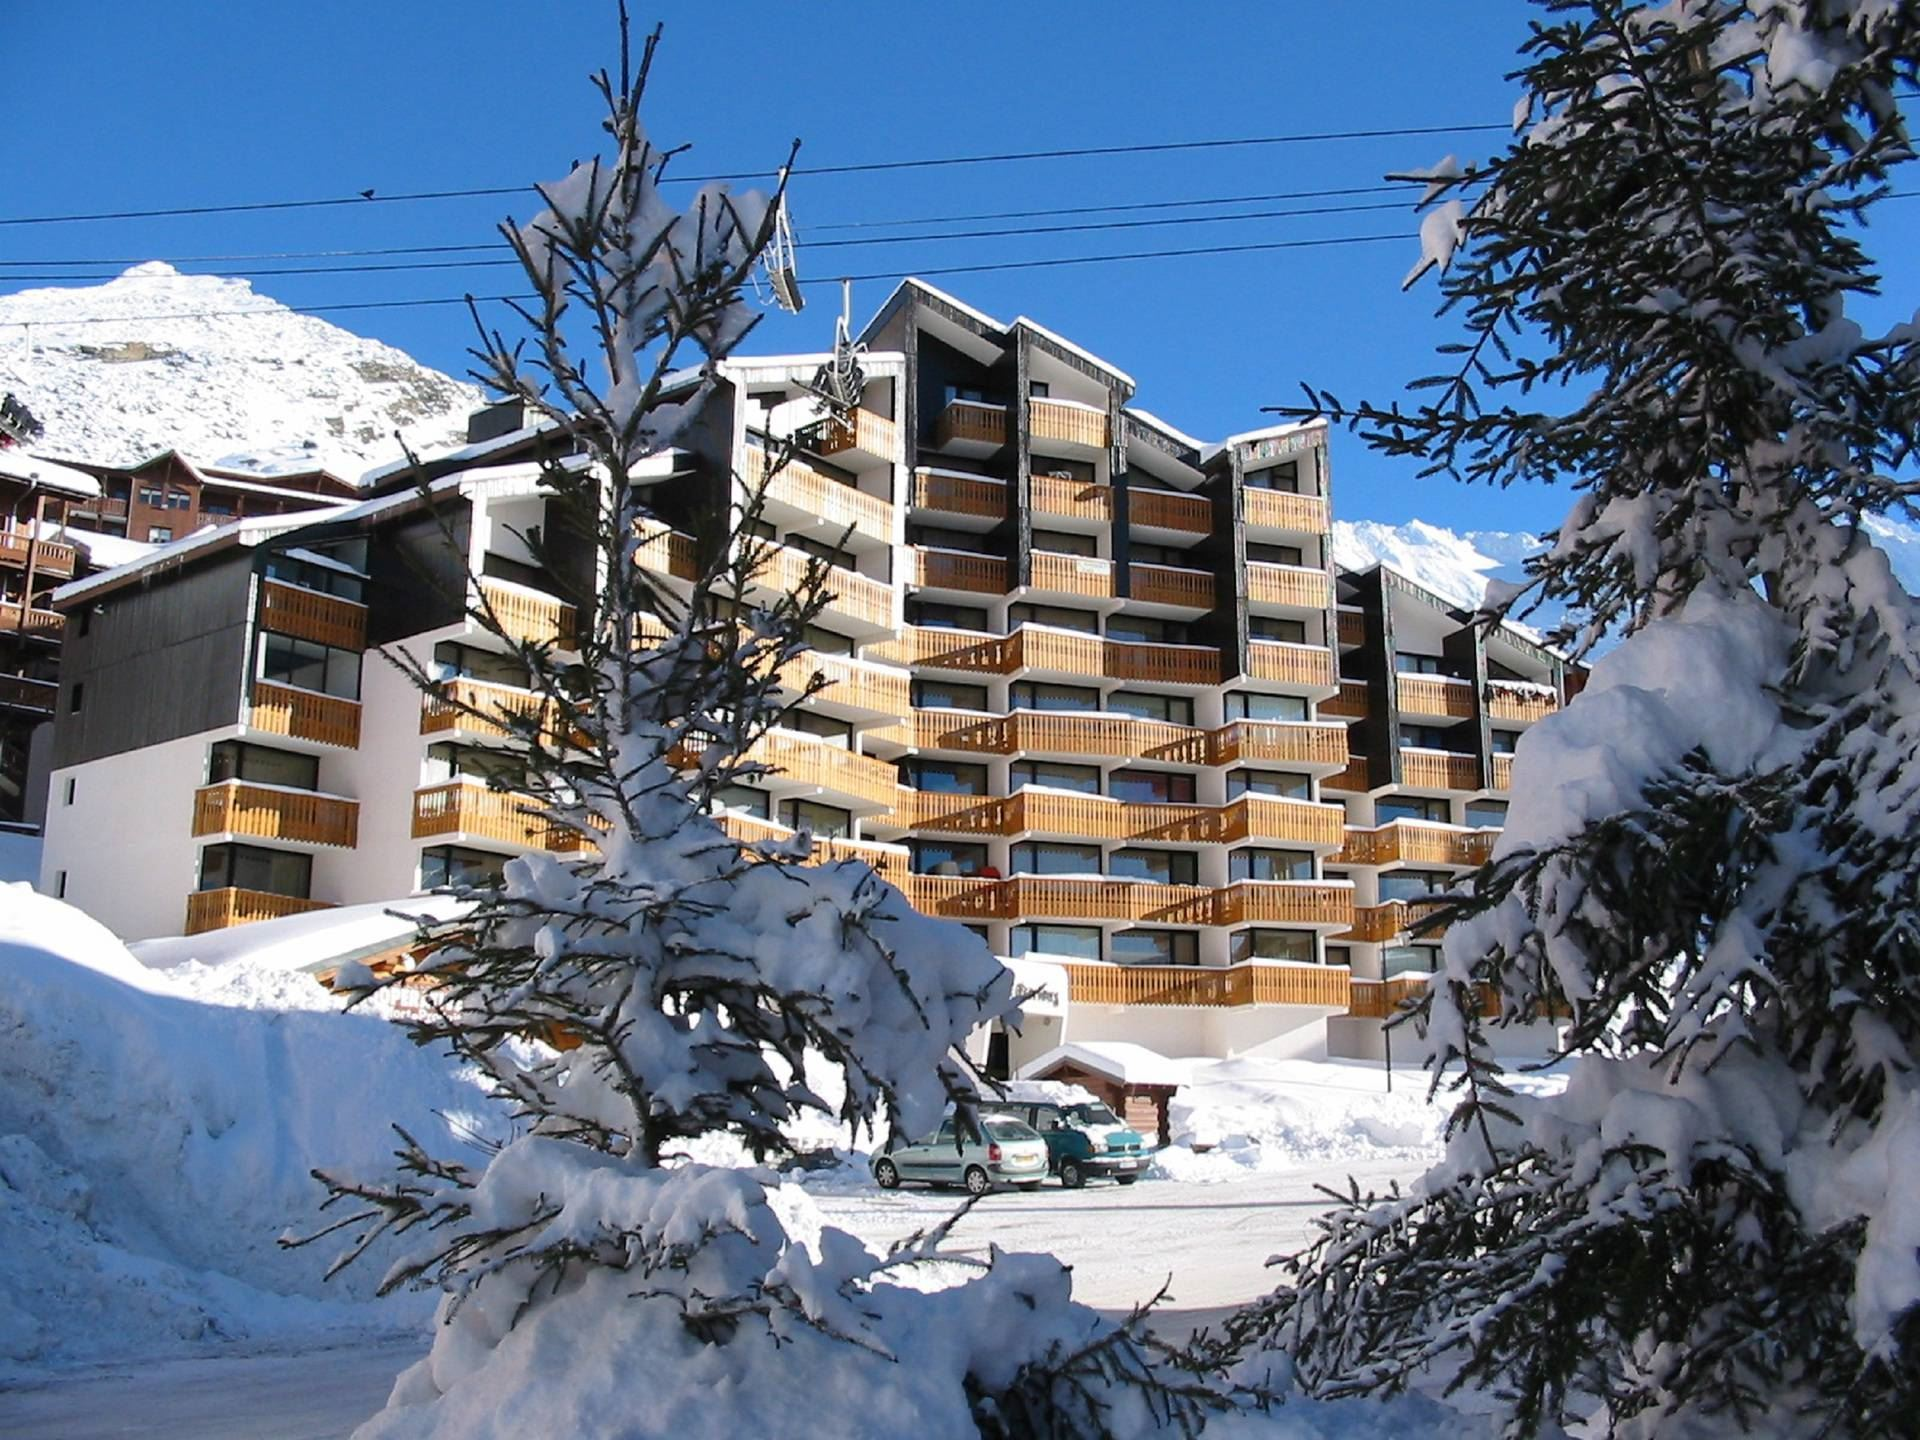 ETERLOUS 43 / 2 ROOMS 4 PERSONS - 1 BRONZE SNOWFLAKE - VTI